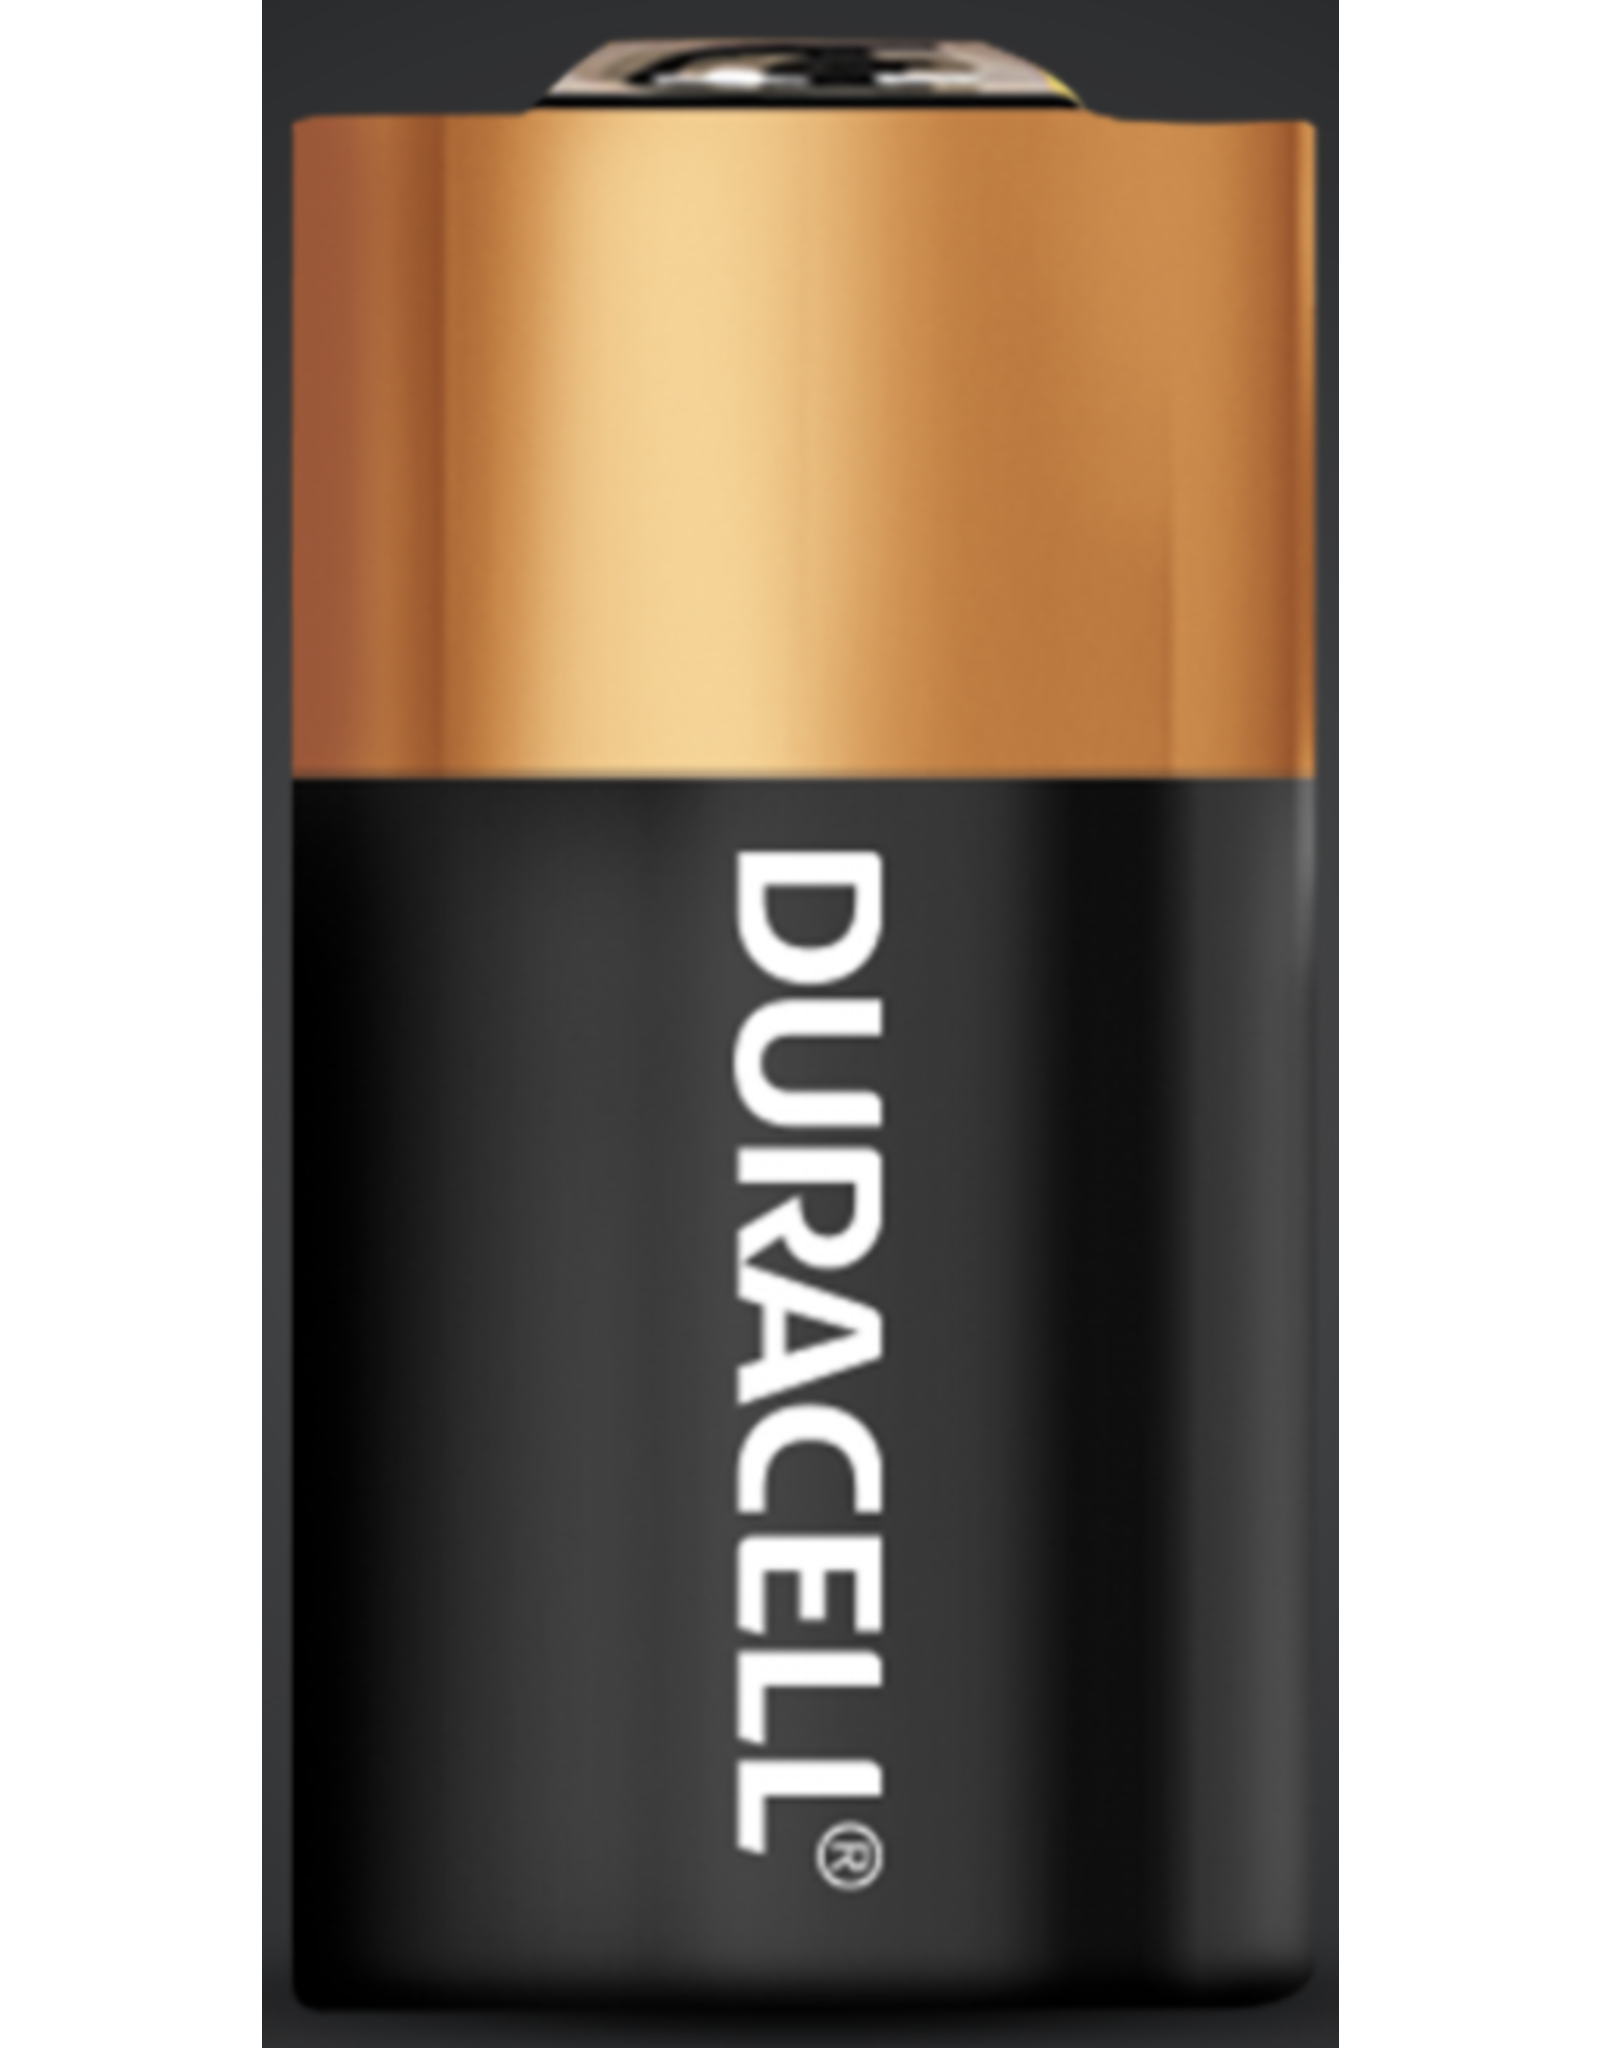 Duracell Duracell 28L 6v Lithium Battery